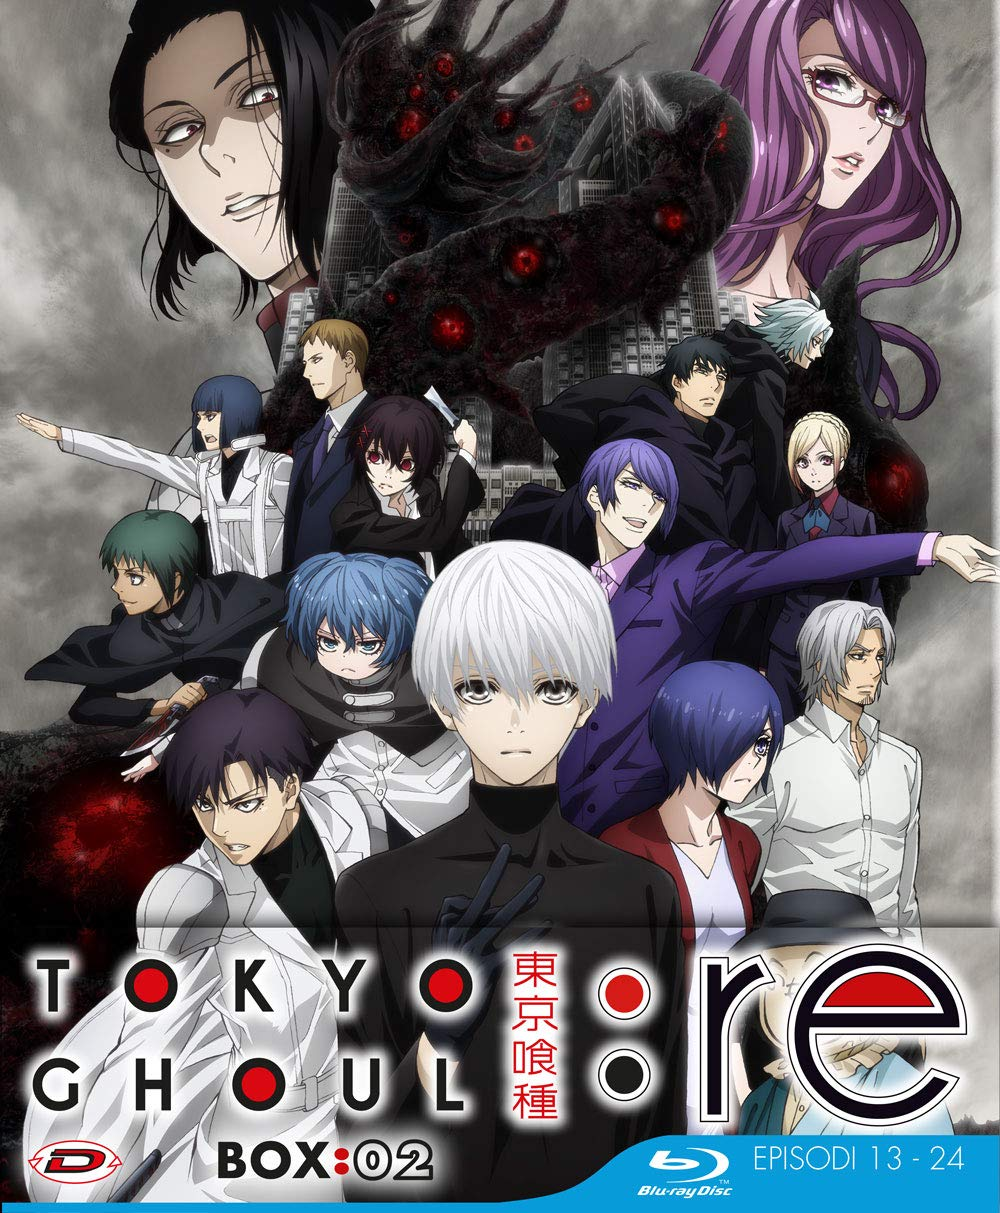 COF.TOKYO GHOUL: RE - STAGIONE 03 BOX 02 (EPS 13-24) (3 BLU-RAY)